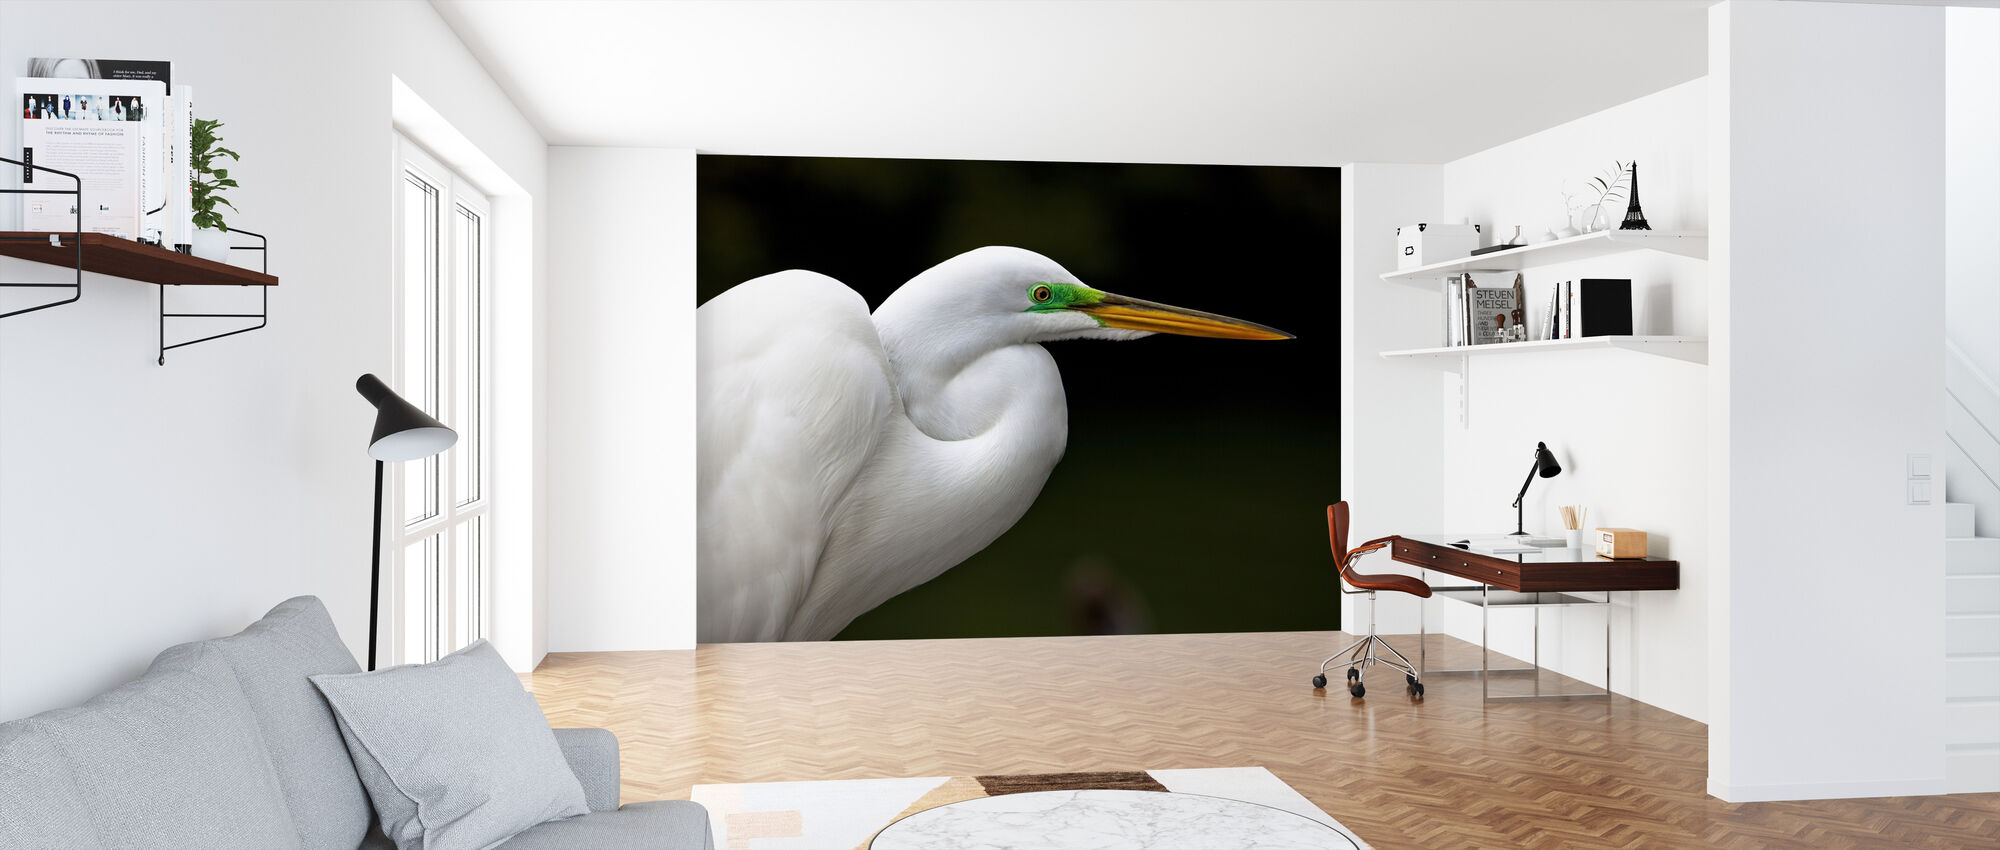 Great White Egret - Wallpaper - Office